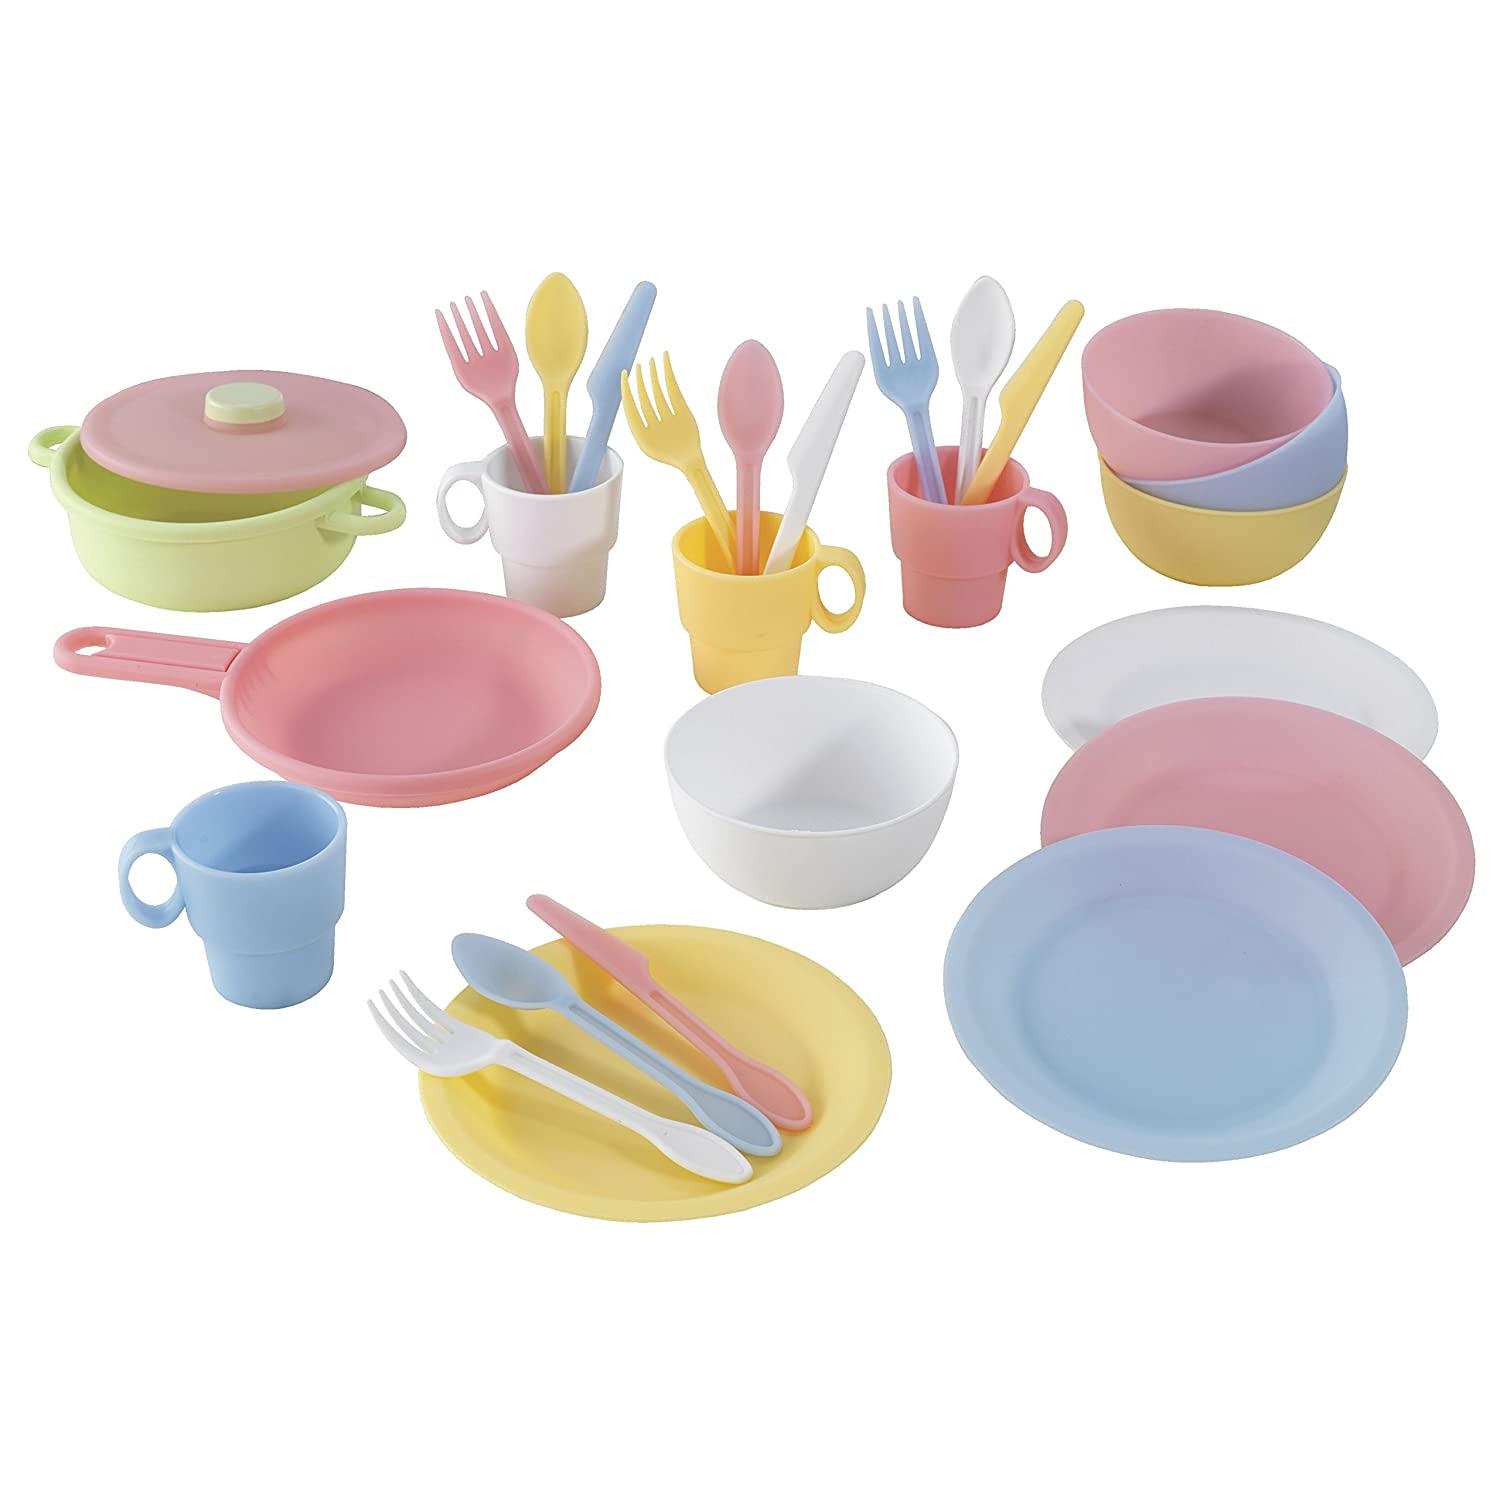 KidKraft 27pc Cookware Set - Pastel